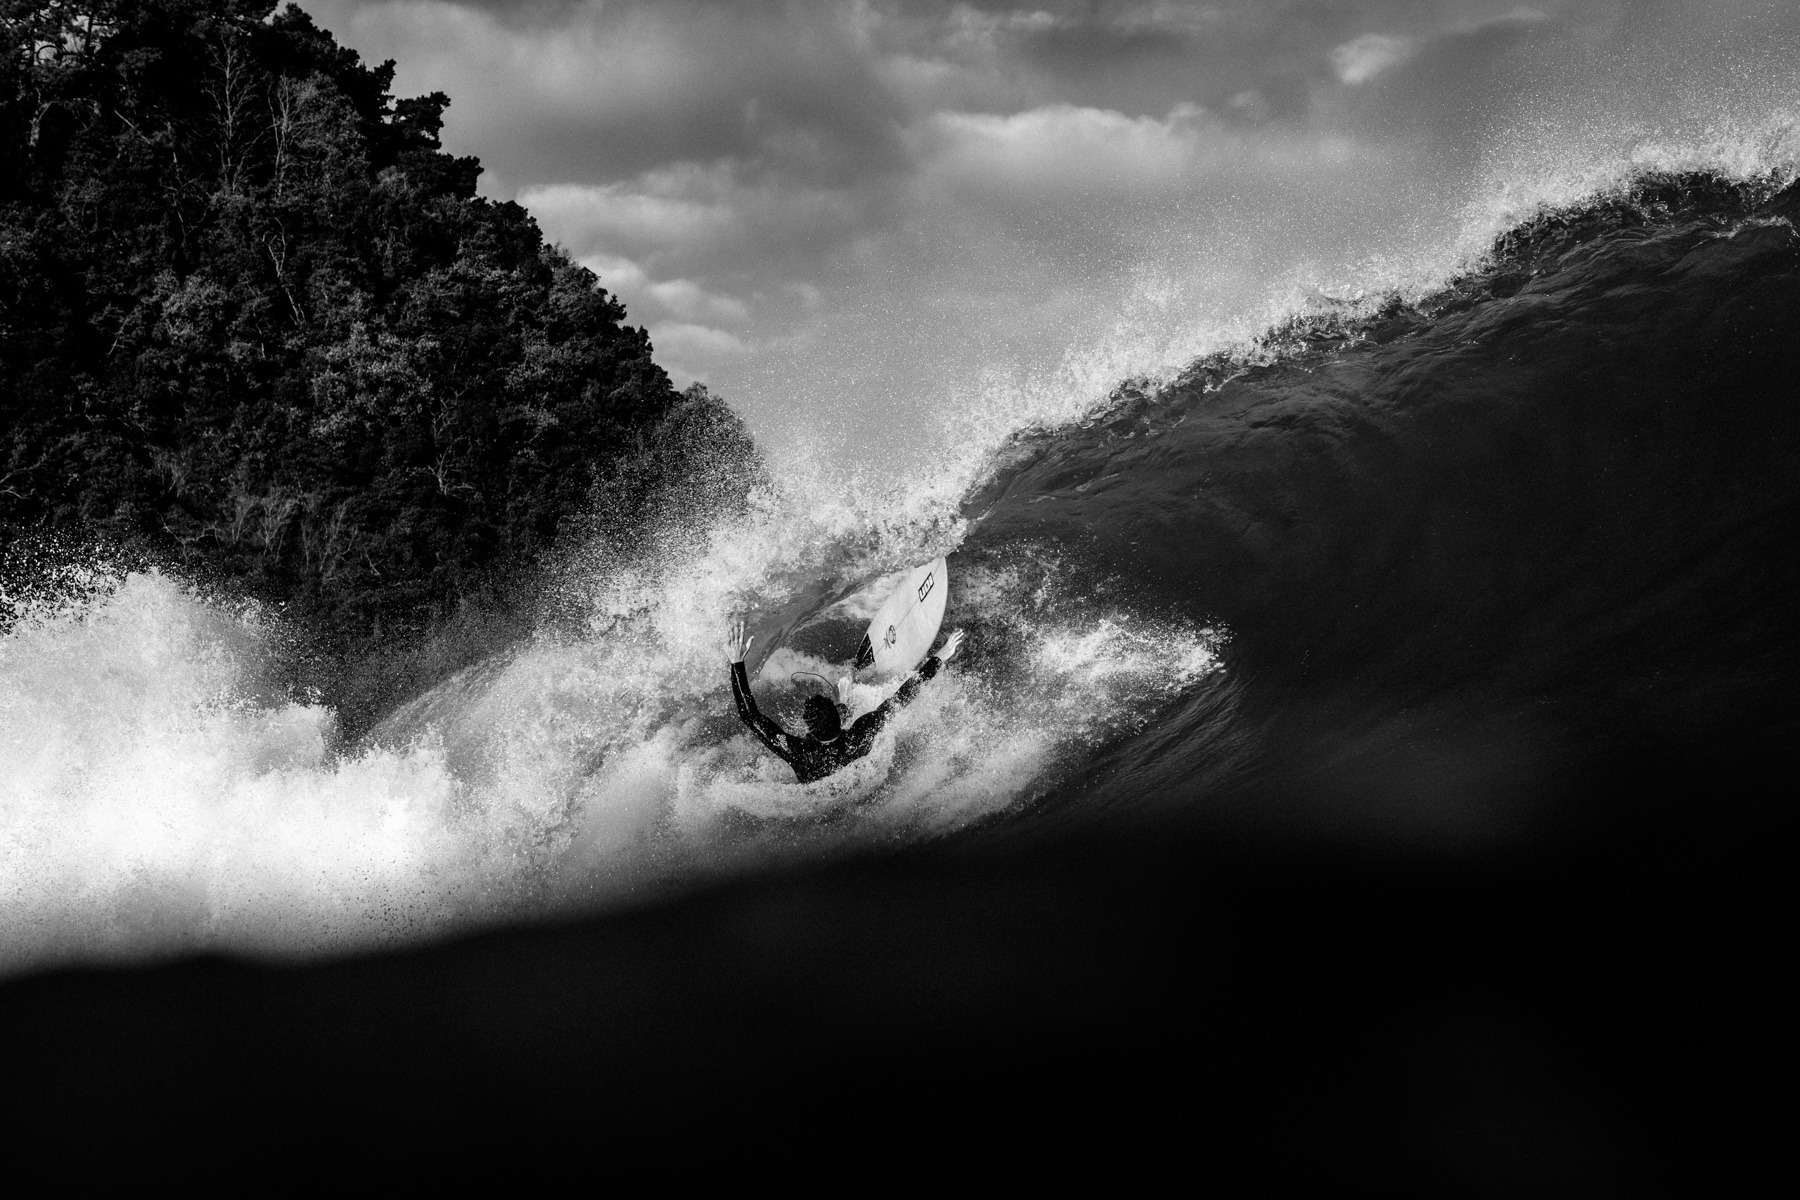 Andy_Criere_Sound_Of_Surfing03